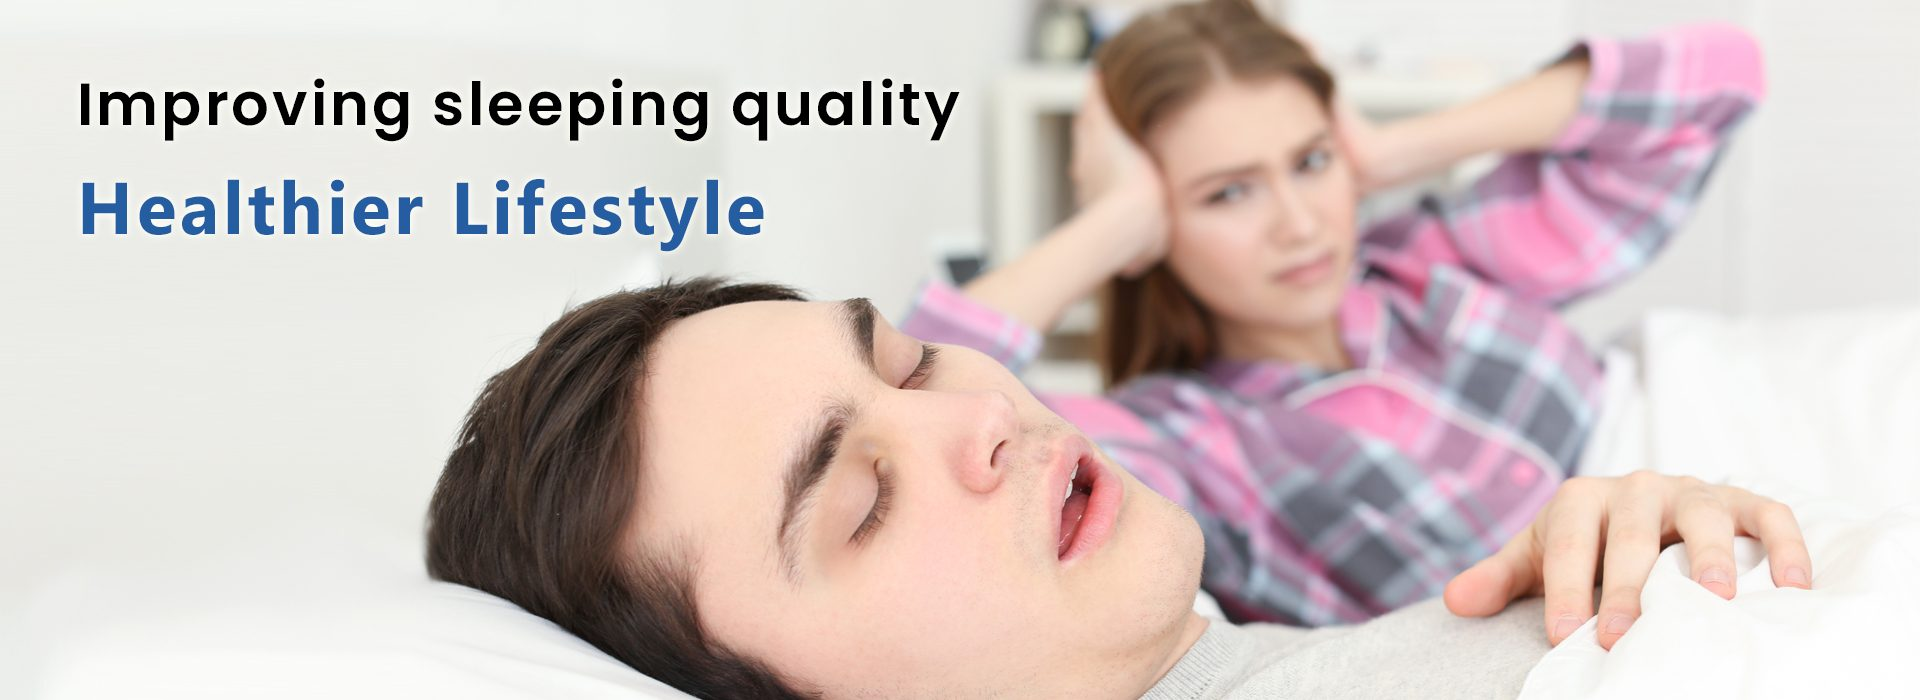 Improving-sleeping-quality